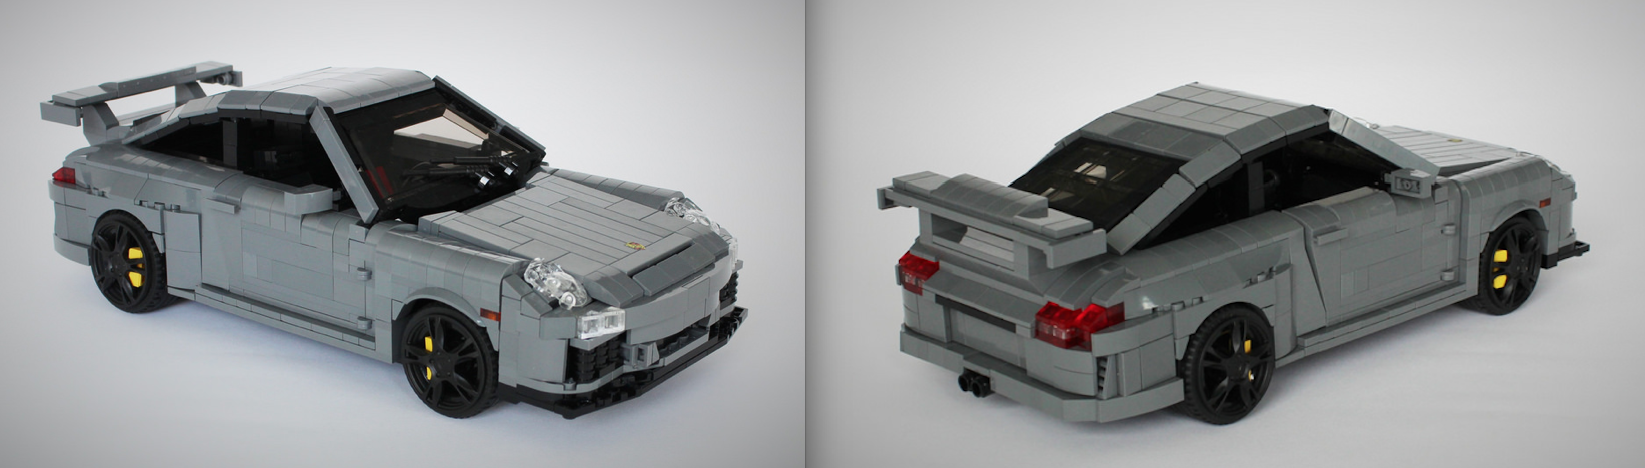 911 The Lego Car Blog